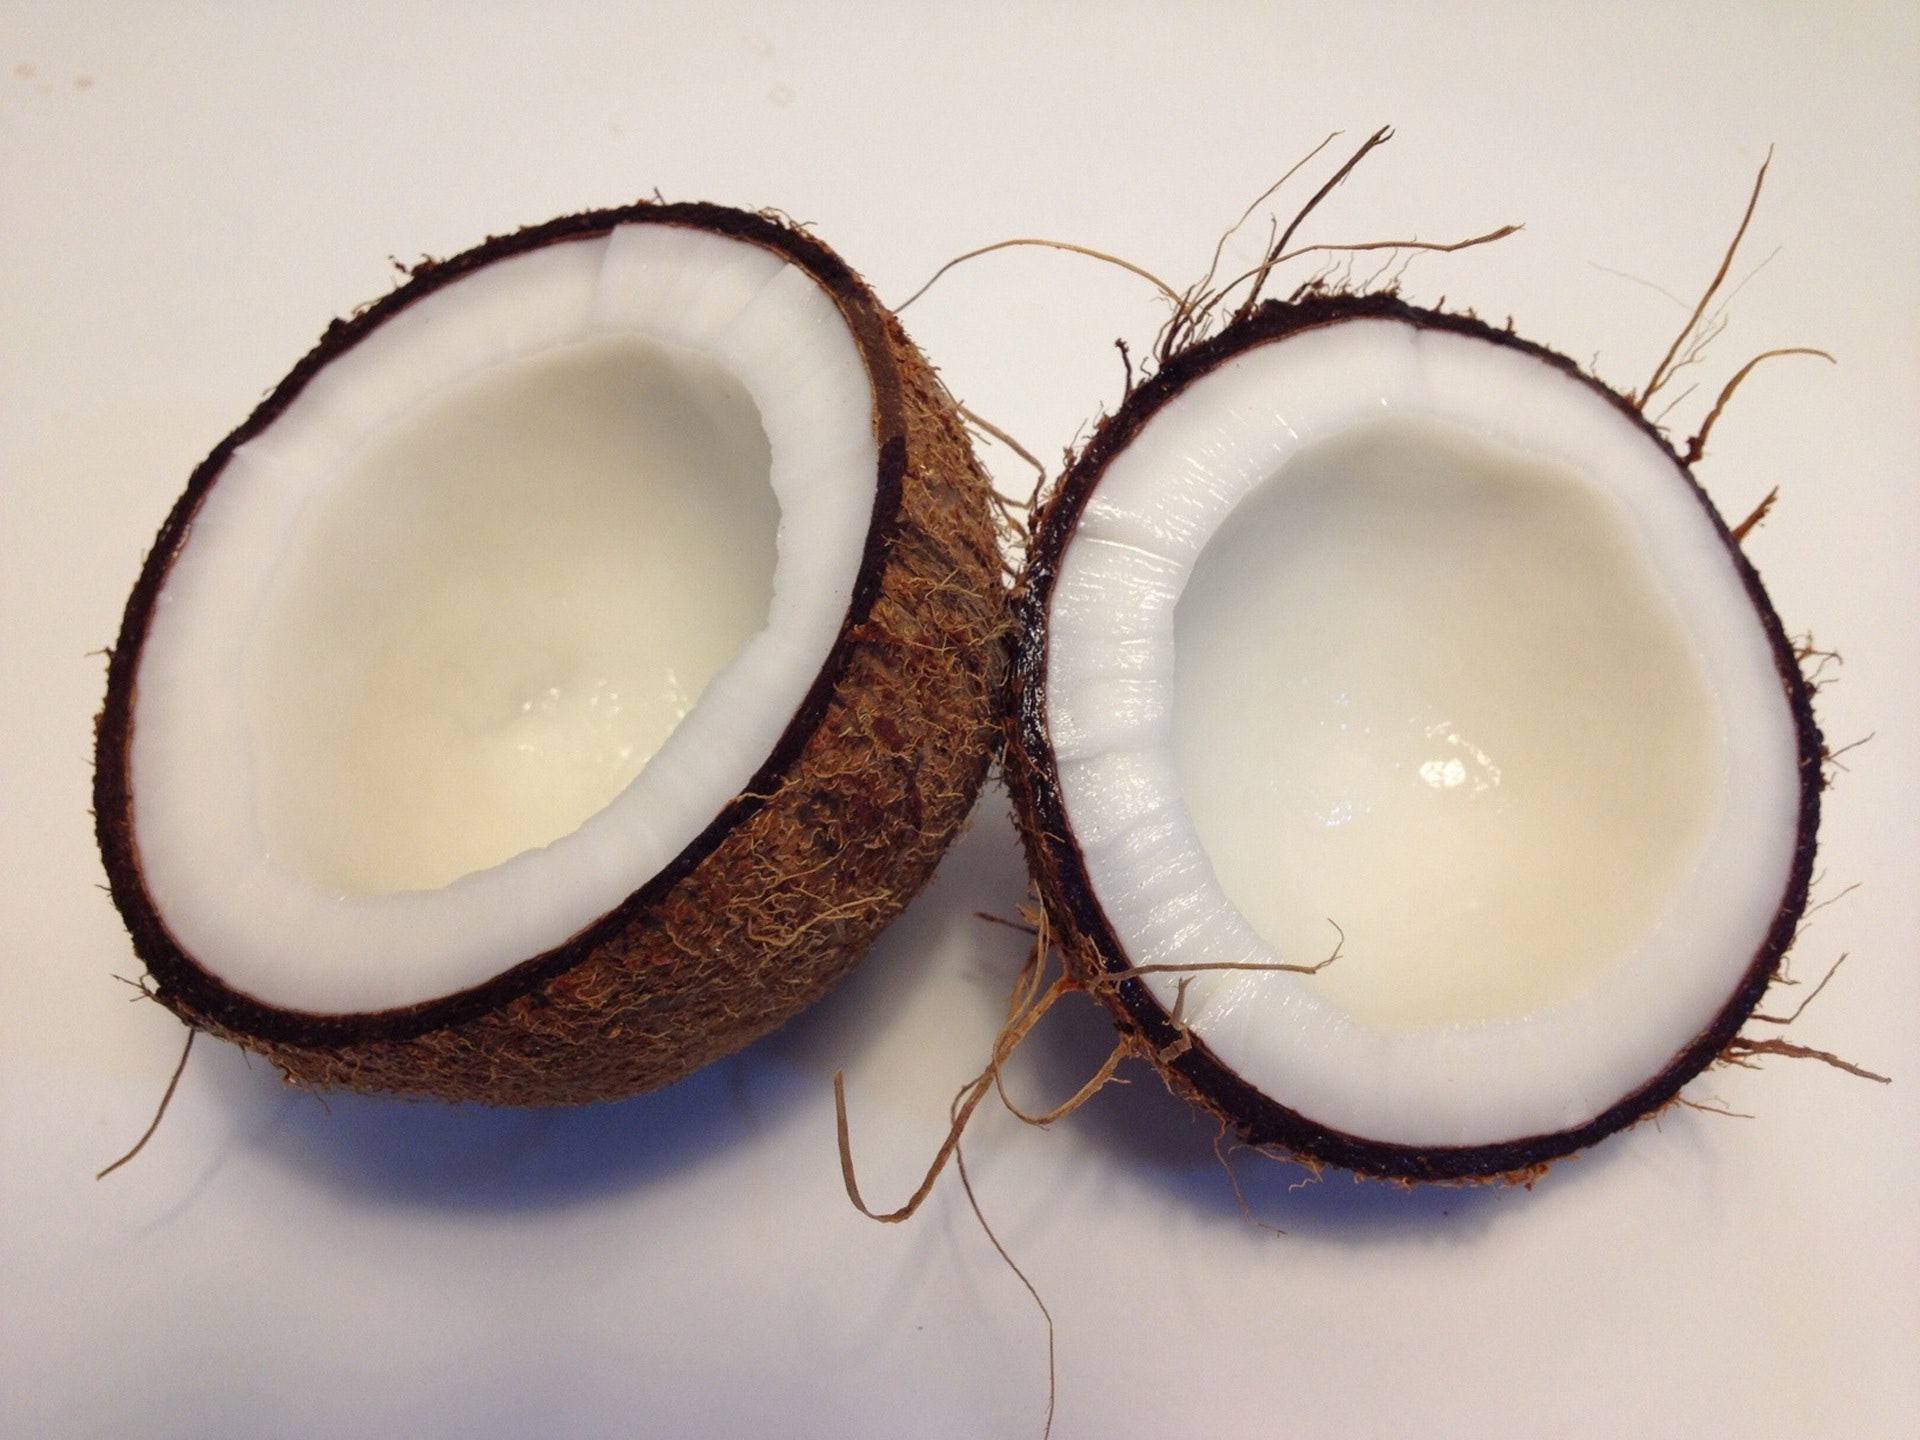 Coconut Coir: An Effective and Inexpensive Growing Medium